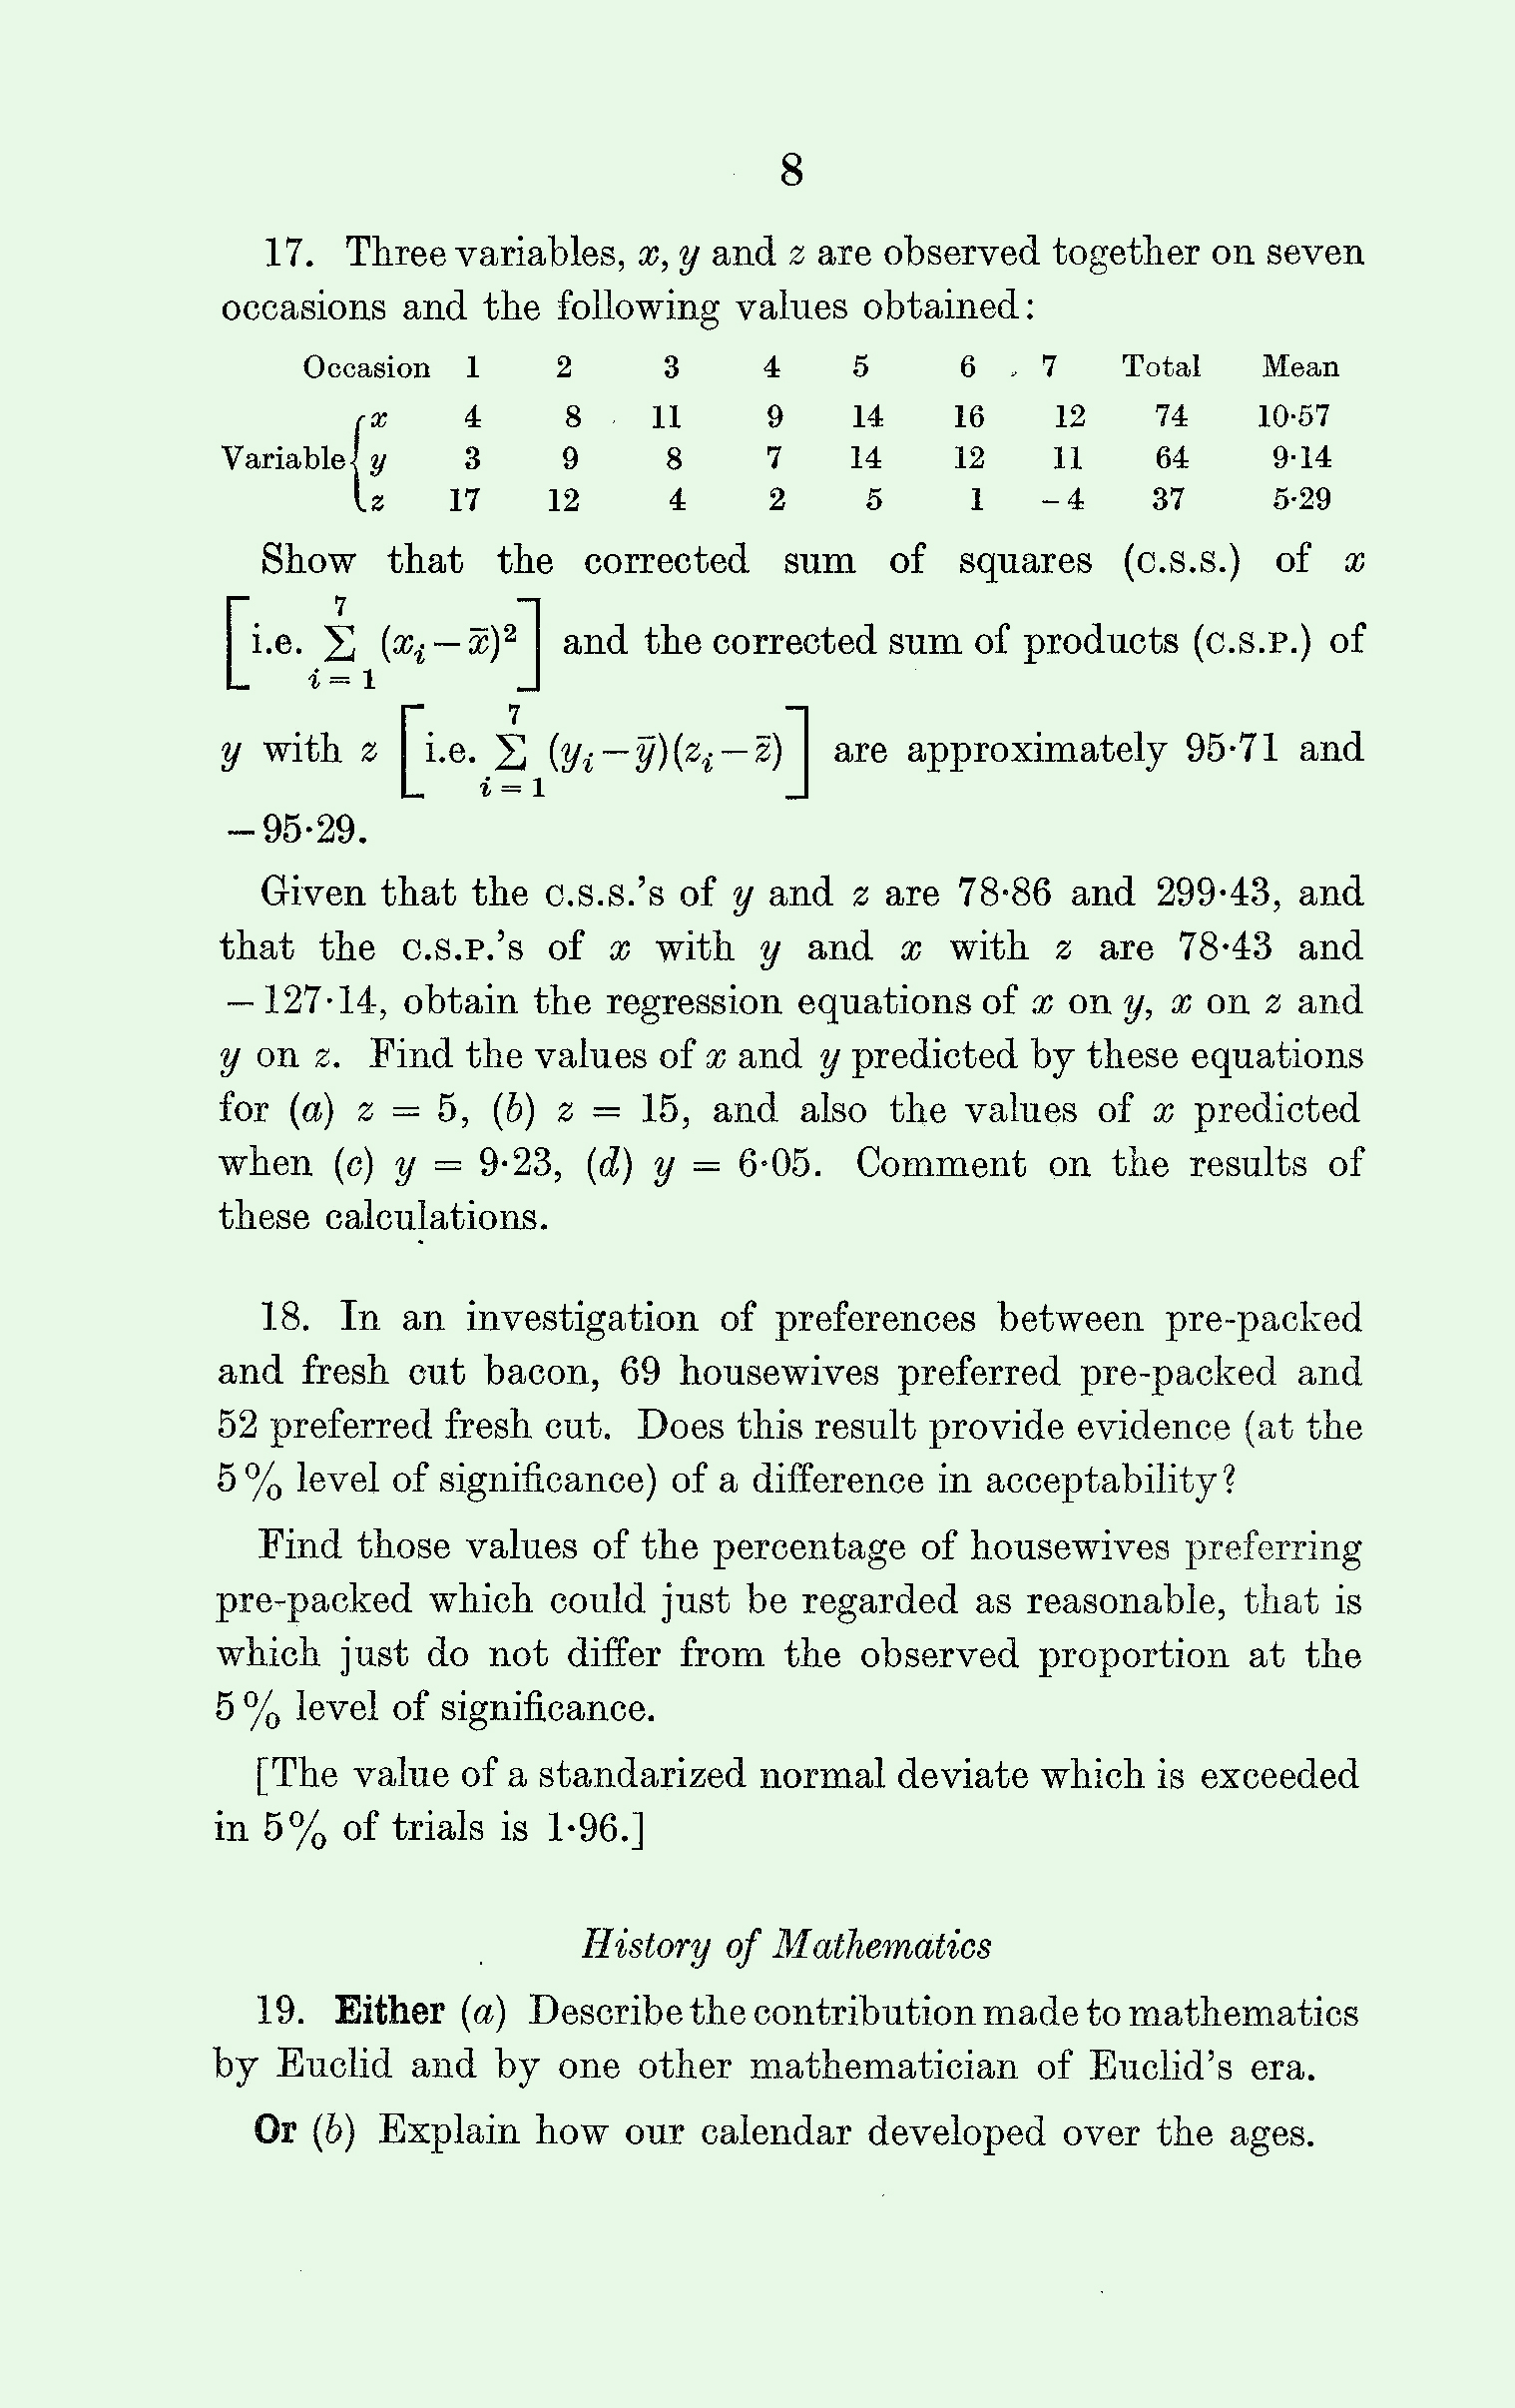 1963 Applied Mathematics A Level & S Level Paper I page 8